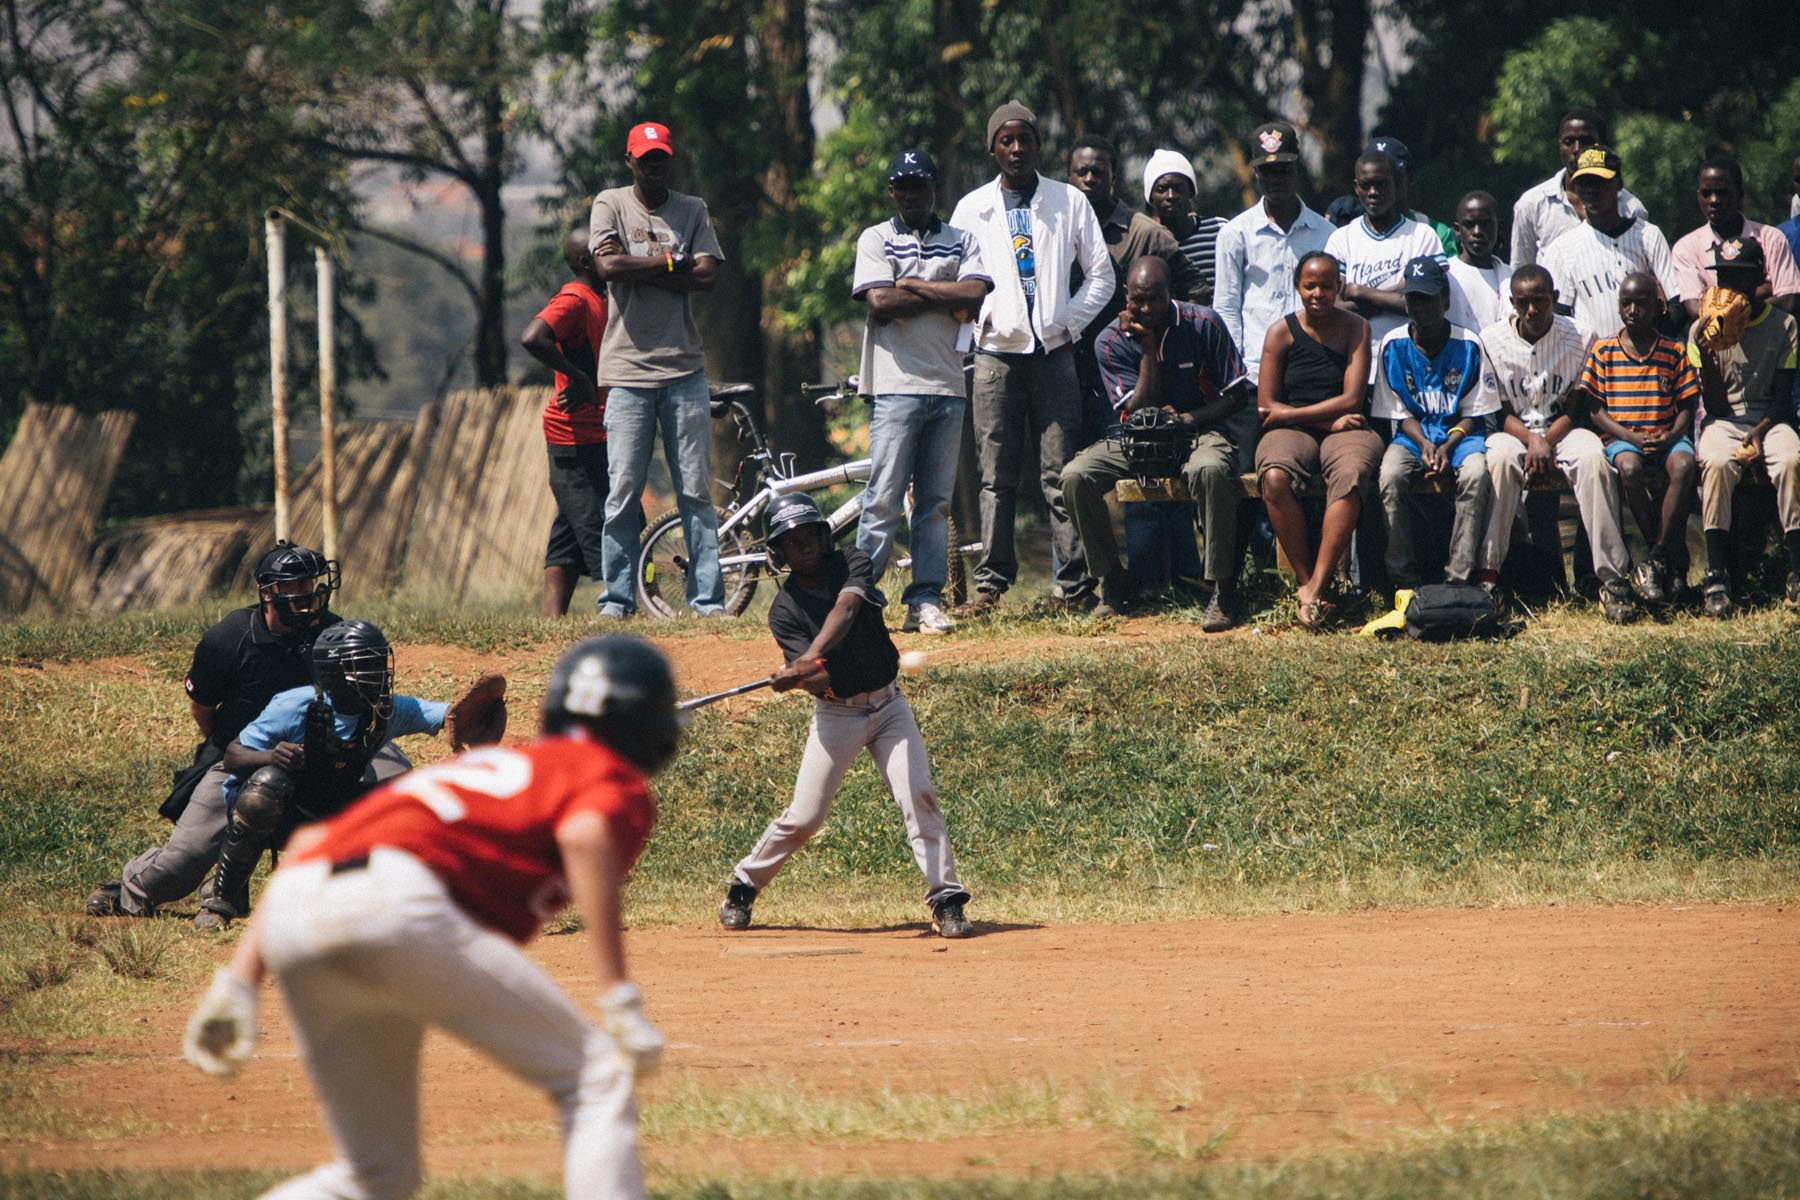 HKP-UgandaBaseball-Day8-2393.jpg